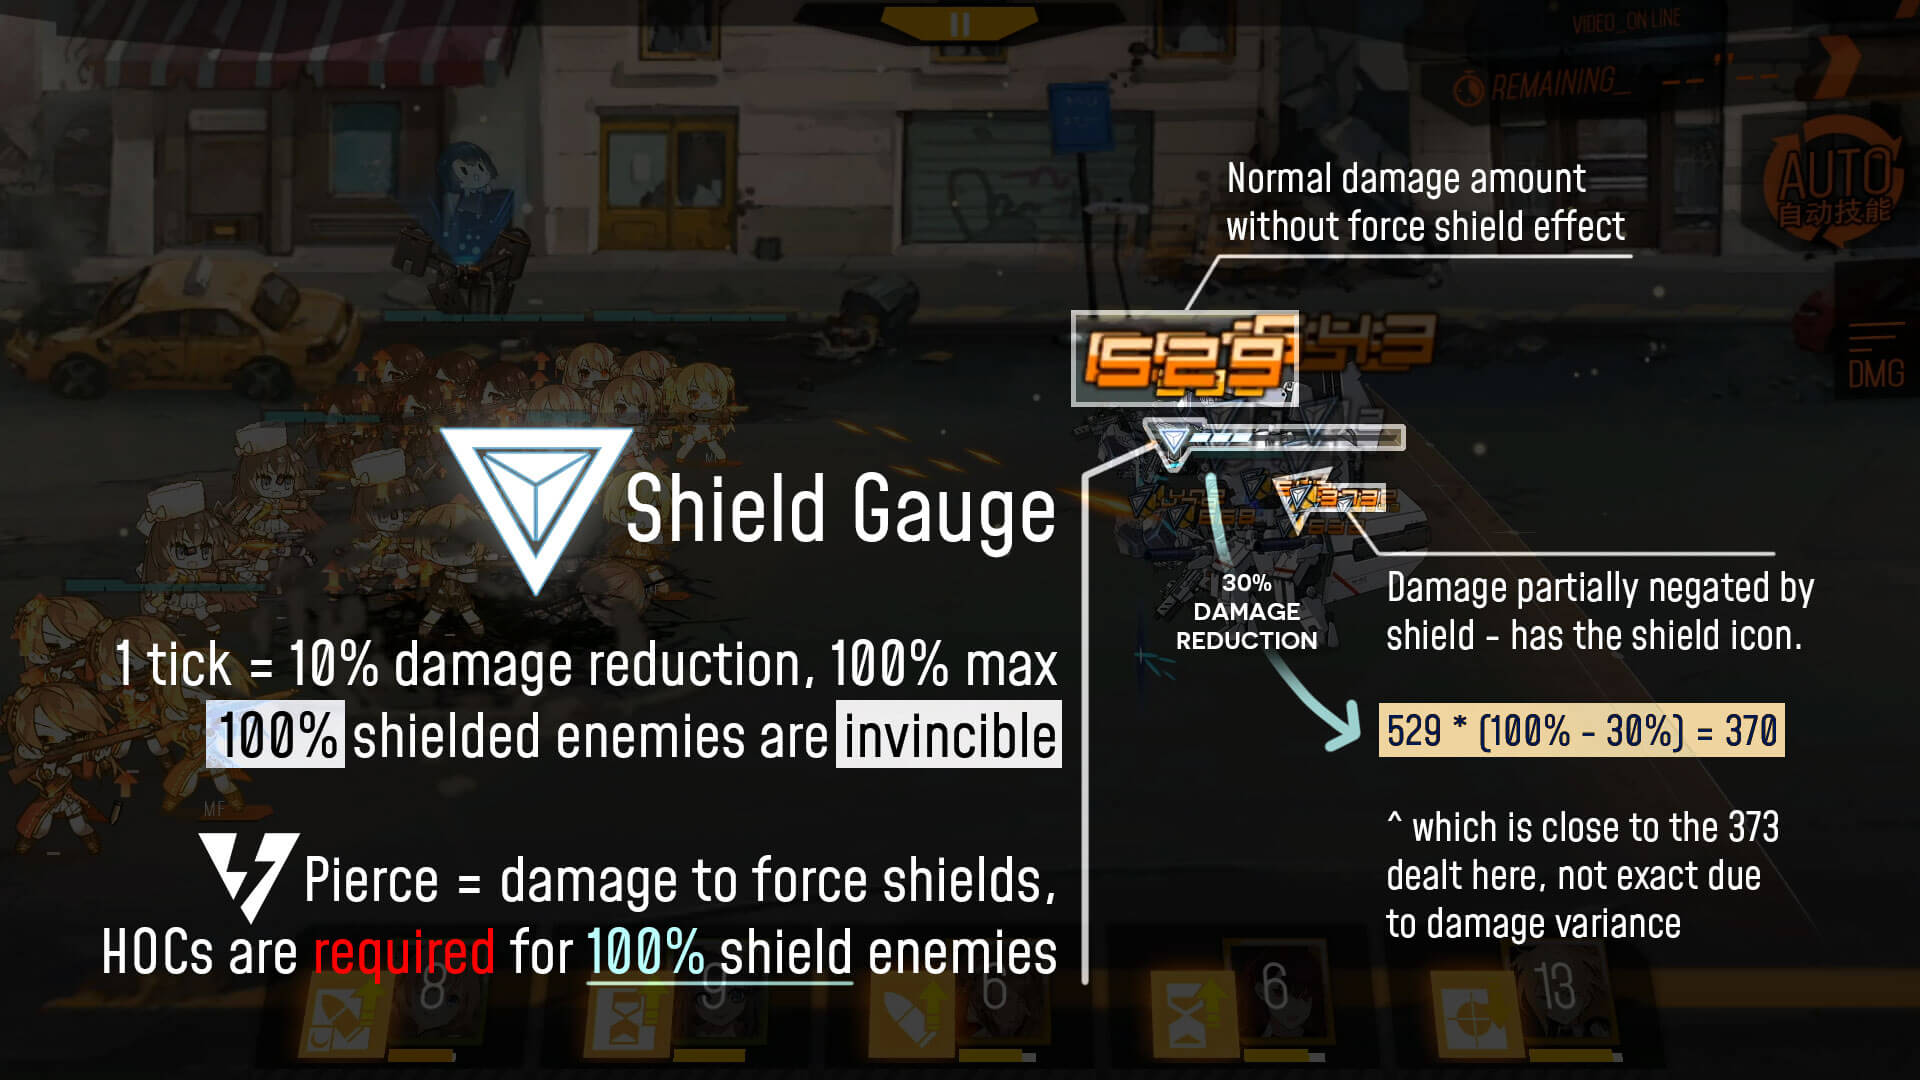 Infographic showing how enemy Force Shields work in GFL